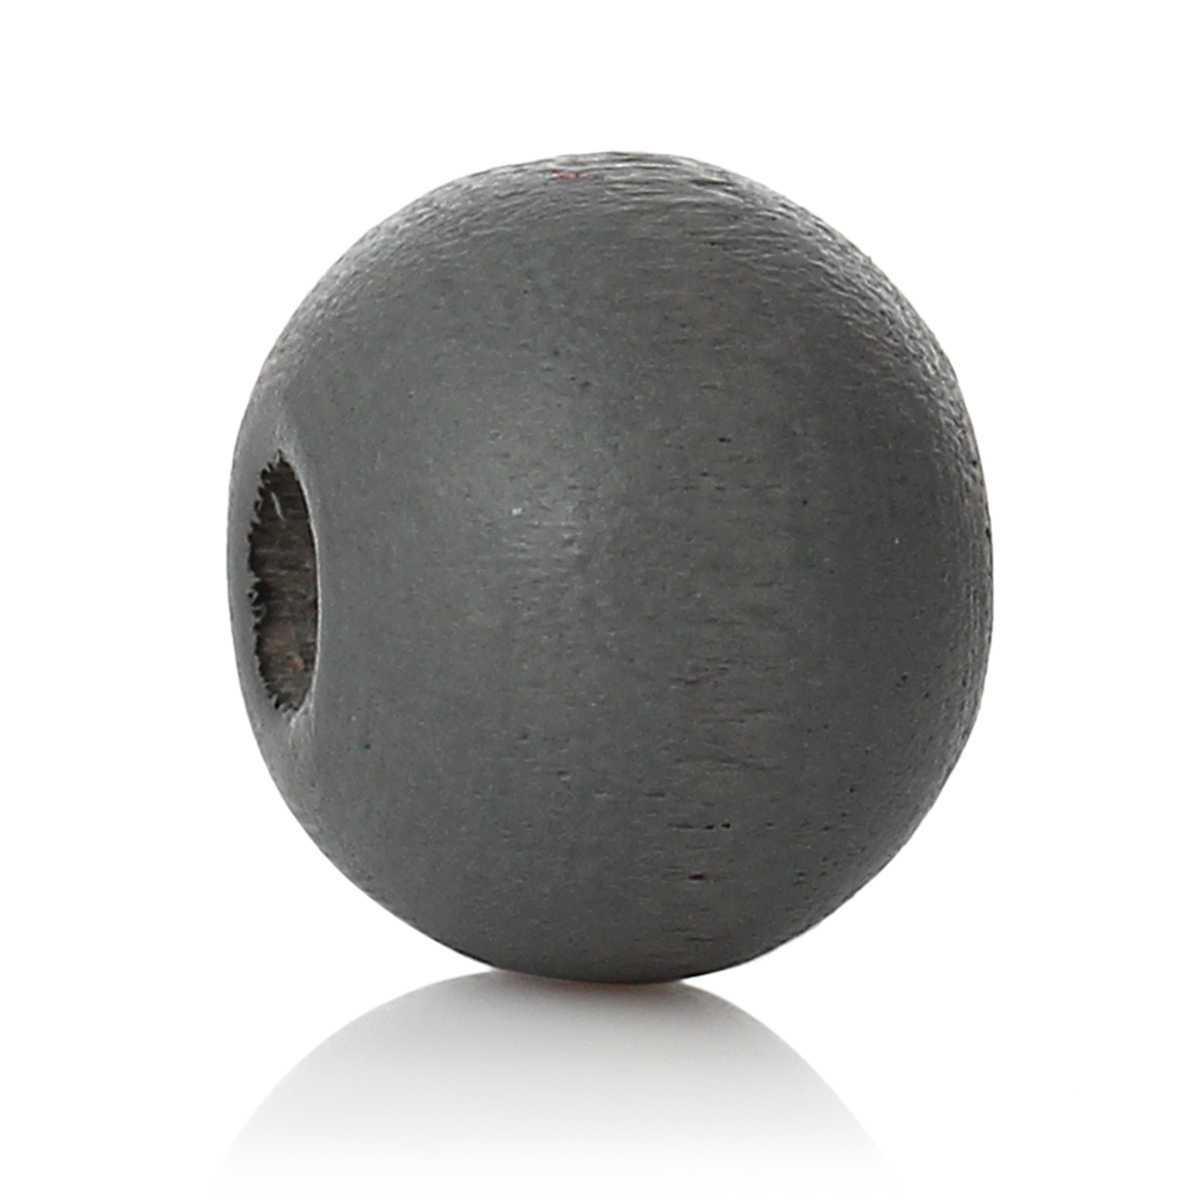 "Wood Spacer Beads Round Dark gray About 8mm( 3/8"") Dia, Hole: Approx 2.4mm-2.8mm, 85 PCs new"